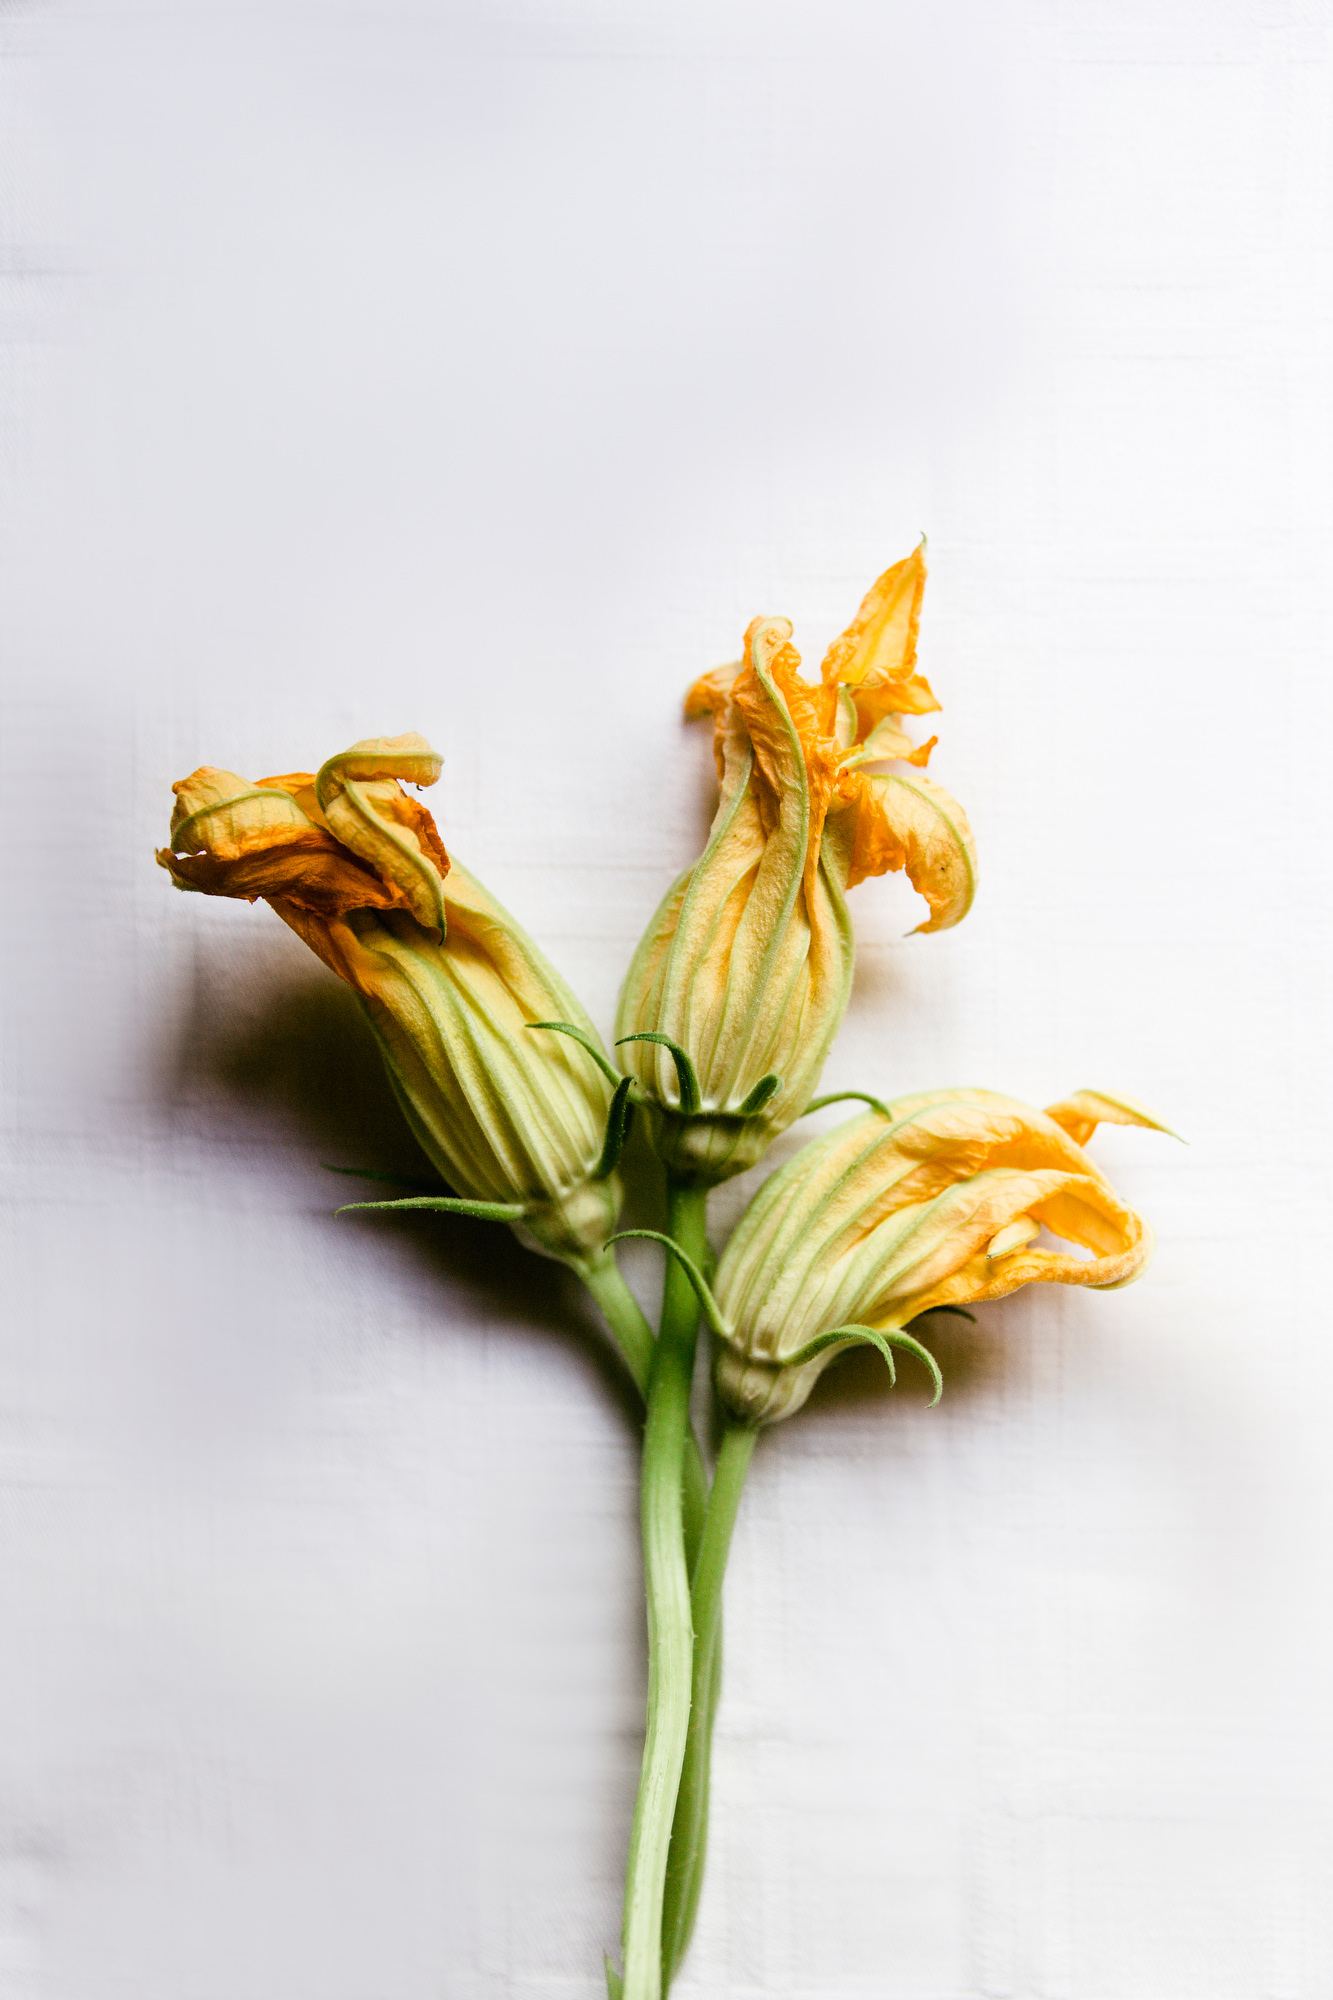 Zucchini flowers | photography & styling by Joske Simmelink